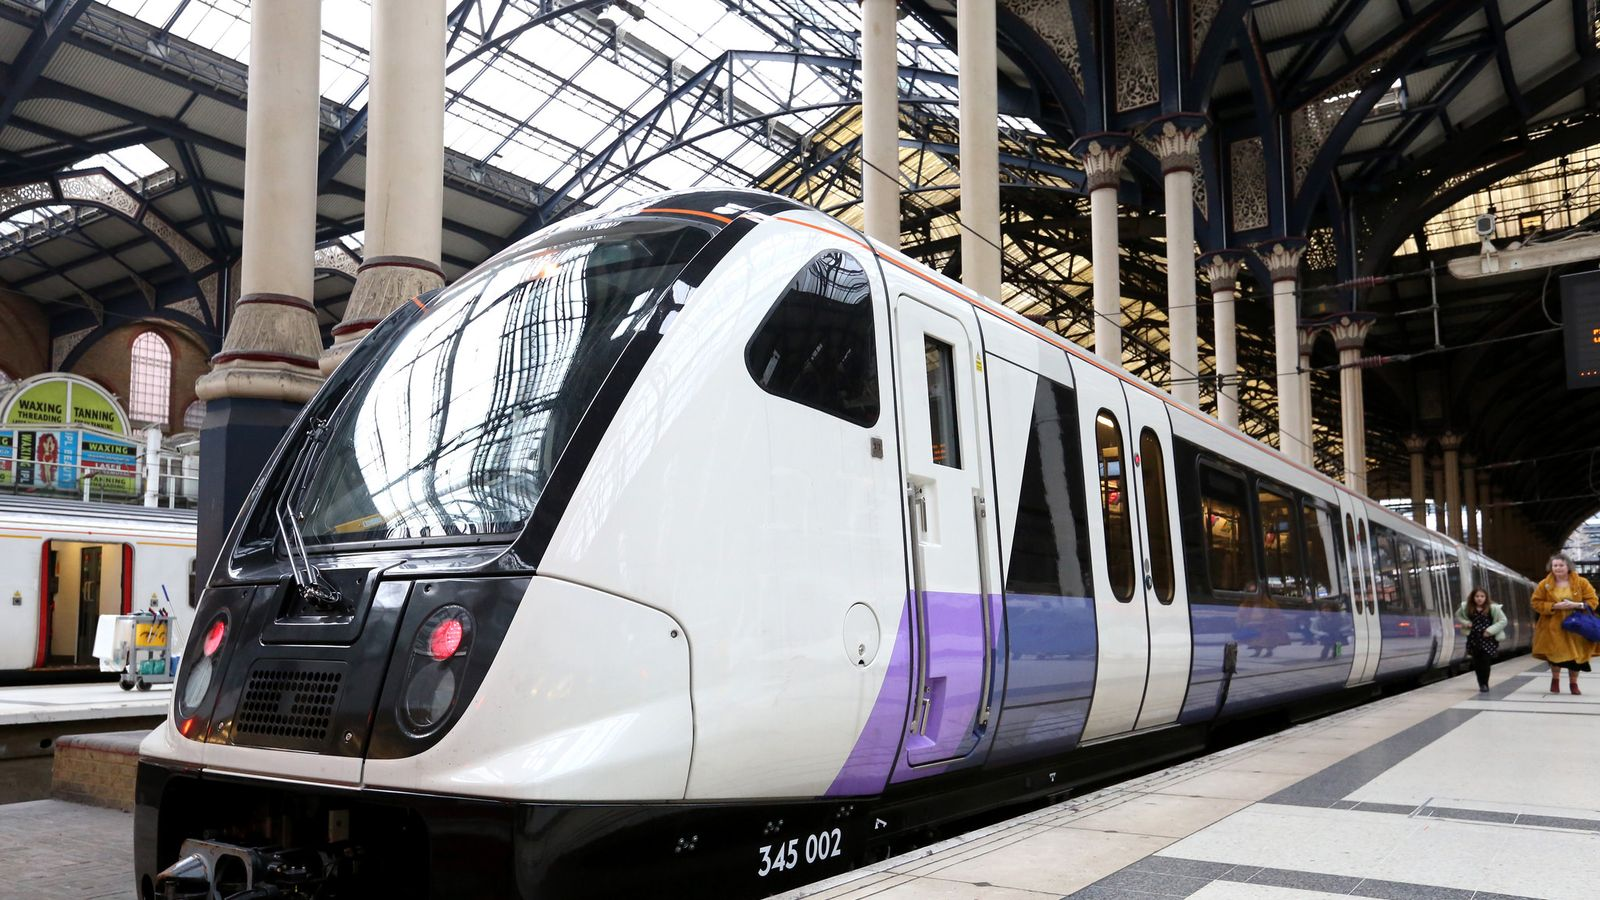 London's Crossrail runs test trains in 'significant moment' for service as it targets 2022 opening